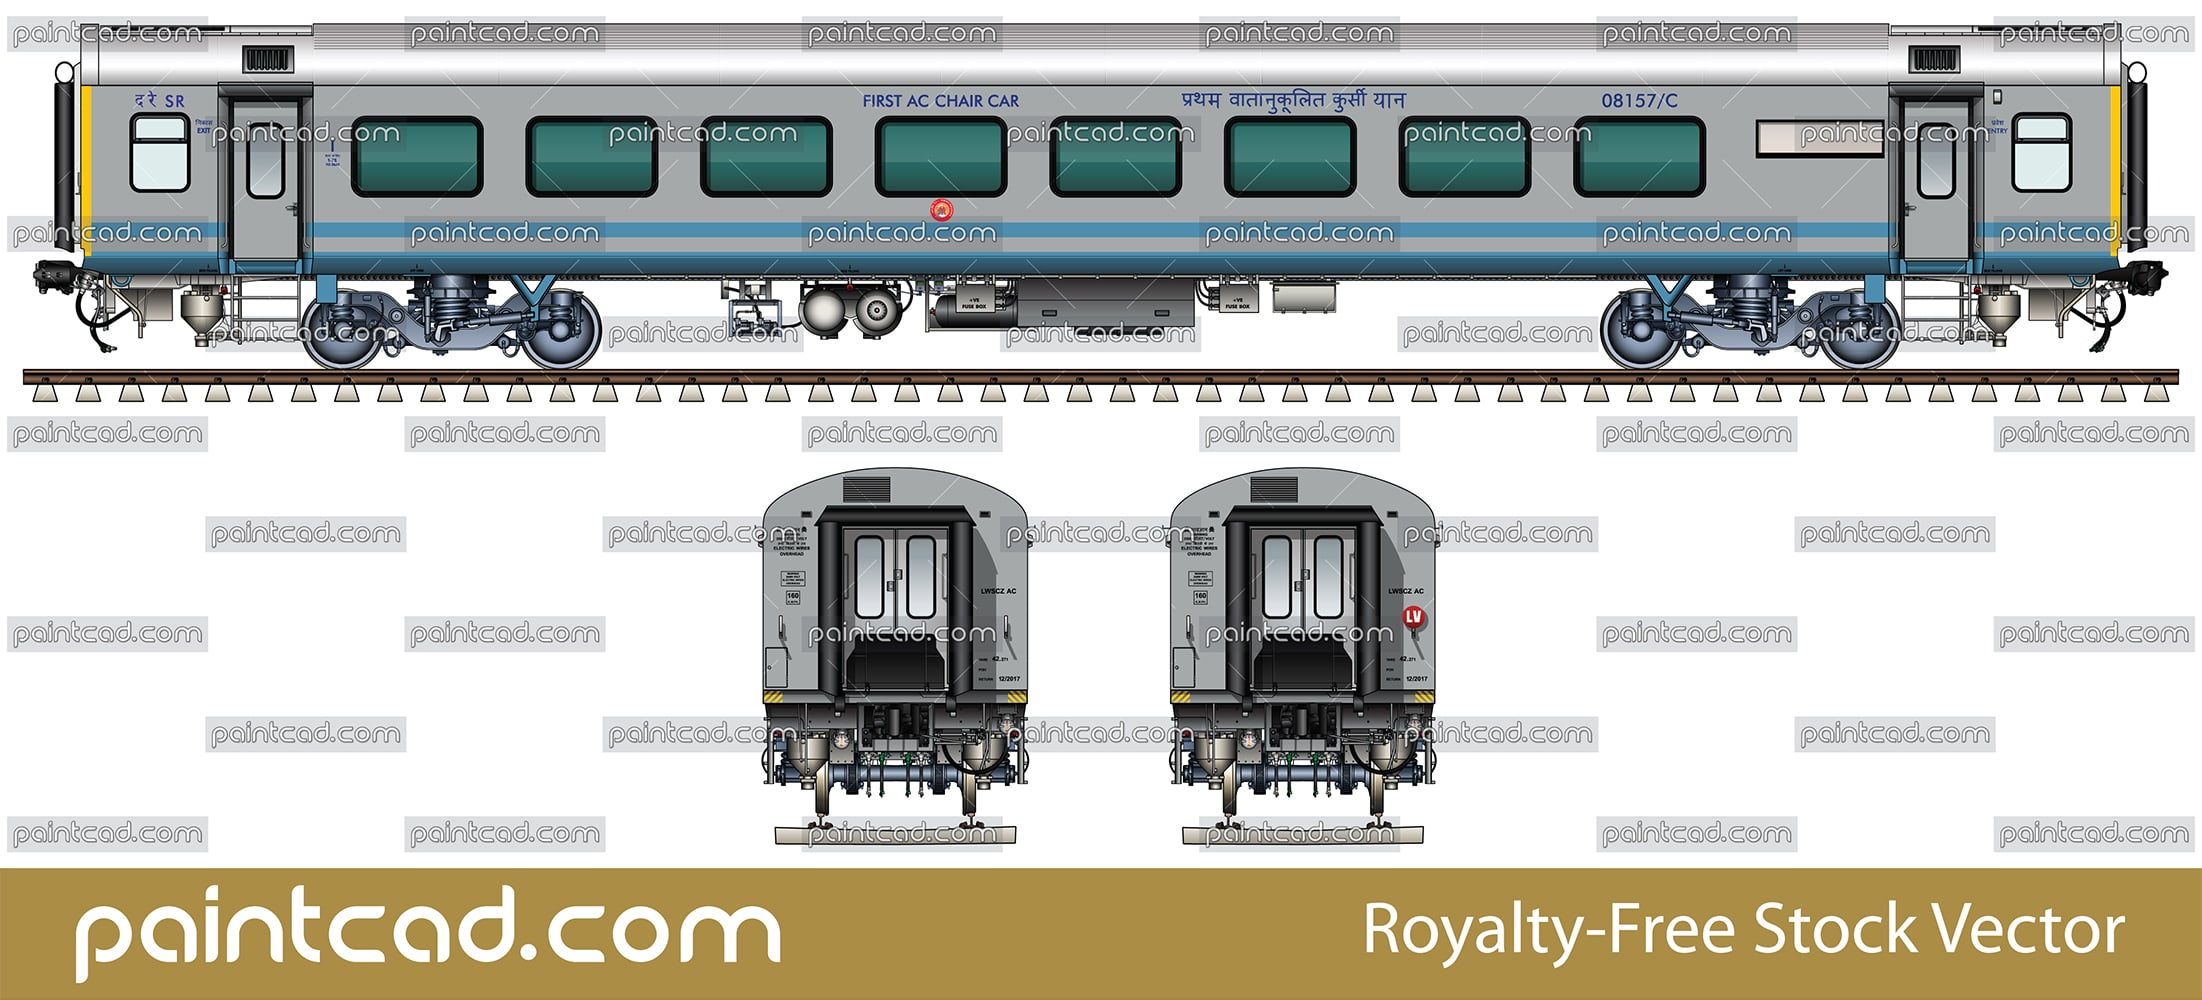 "IMPORTANT: EDITORIAL USE ONLY! Vector illustration with side and front view of First class passenger Air-conditioned chair car ""Linke Hofmann Busch"" in gray livery with blue stripes. This wagon  have a 78 seats. Realistic color drawing with many details - CBC ""H"" type tight lock coupler, FIAT bogies, intermediate tank bio toilets, brake equipment, battery box, electrical cubical, ventilation, destination board, technical inscriptions and others. Isolated objects over white background."